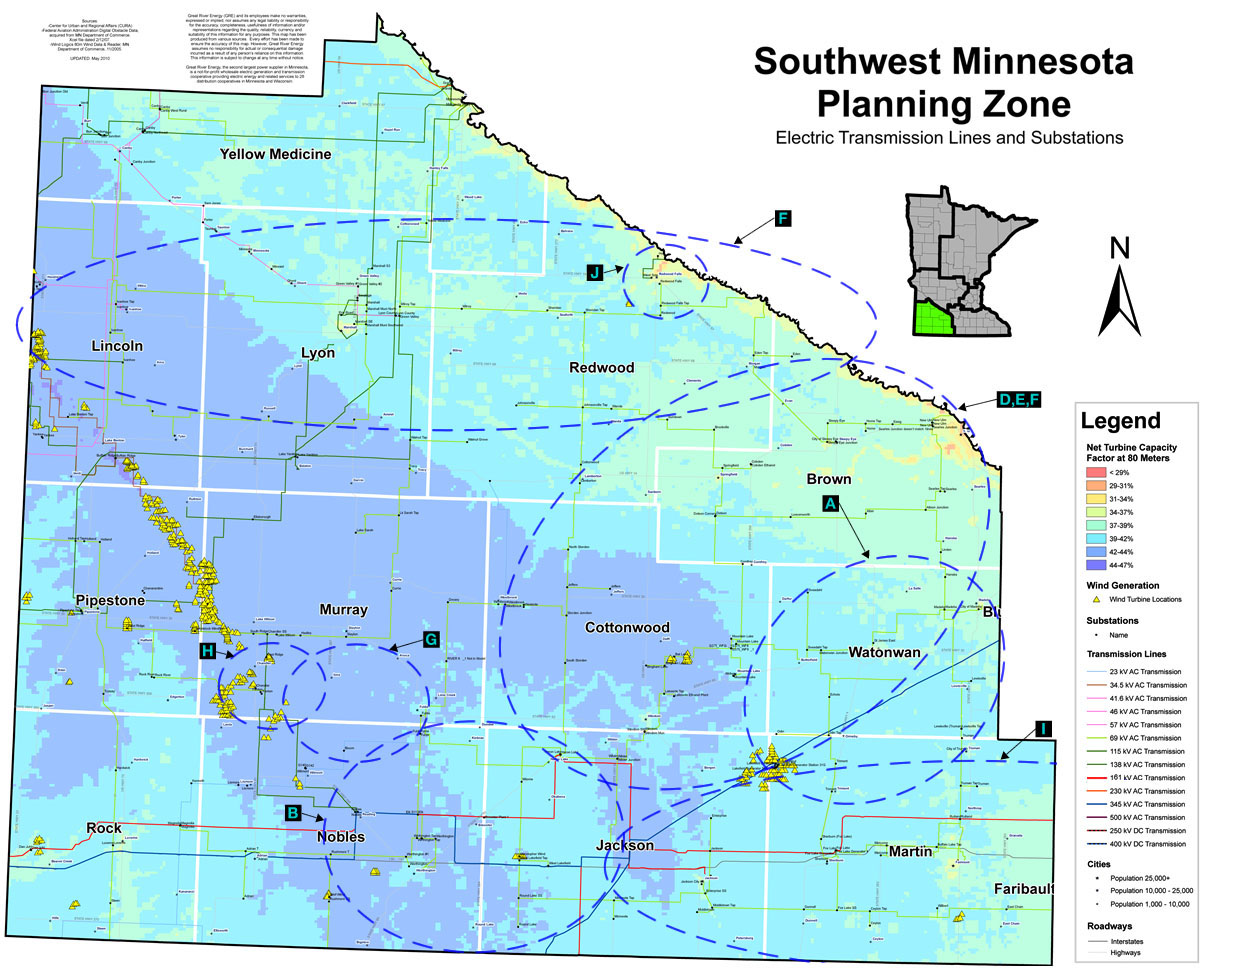 Minnesota Electric Transmission Planning